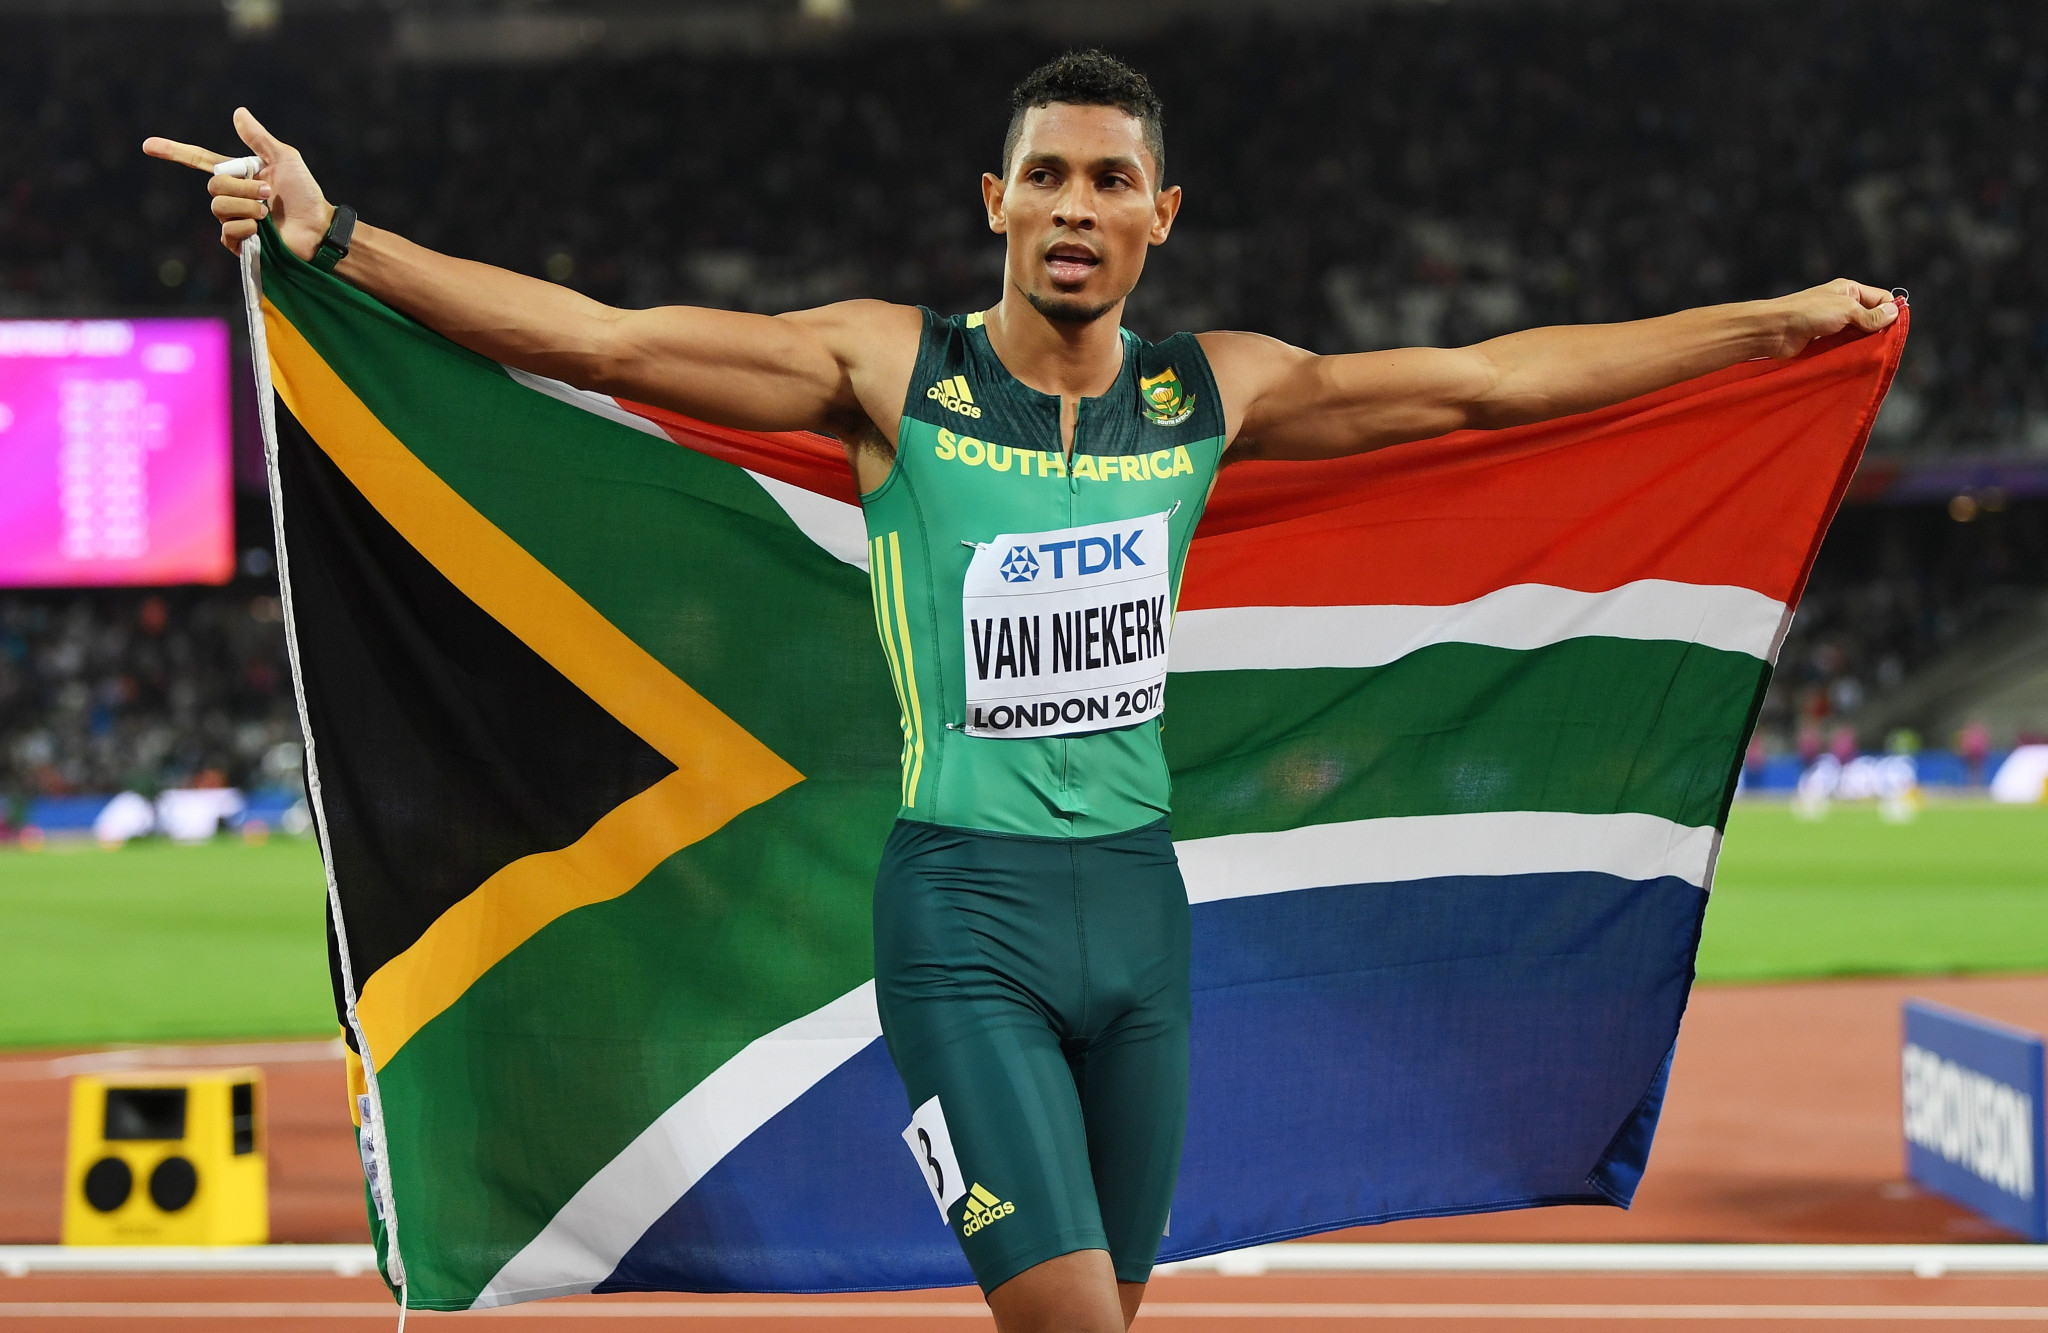 South Africa's Wayde van Niekerk wants to run in the 100m and 200m at Gold Coast 2018 ©Getty Images